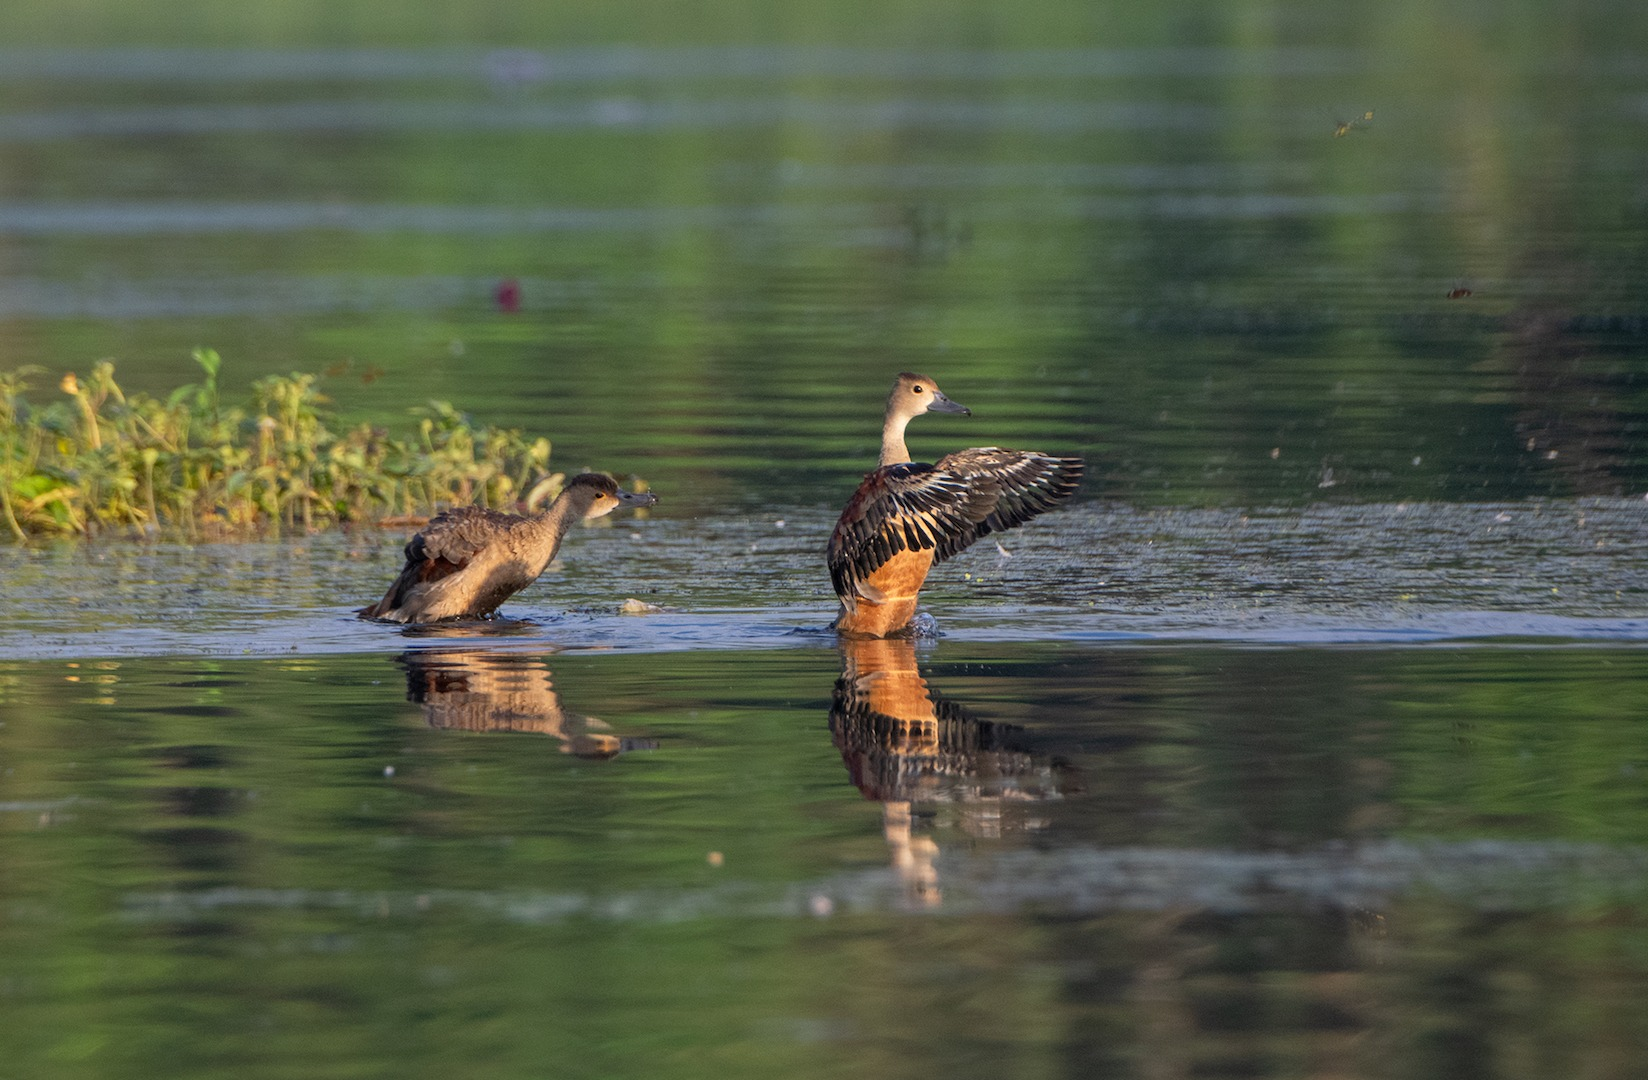 Lesser whistling ducks (above) and Indian spot-billed ducks are resident species at the lake, seen early in the morning and at sundown.